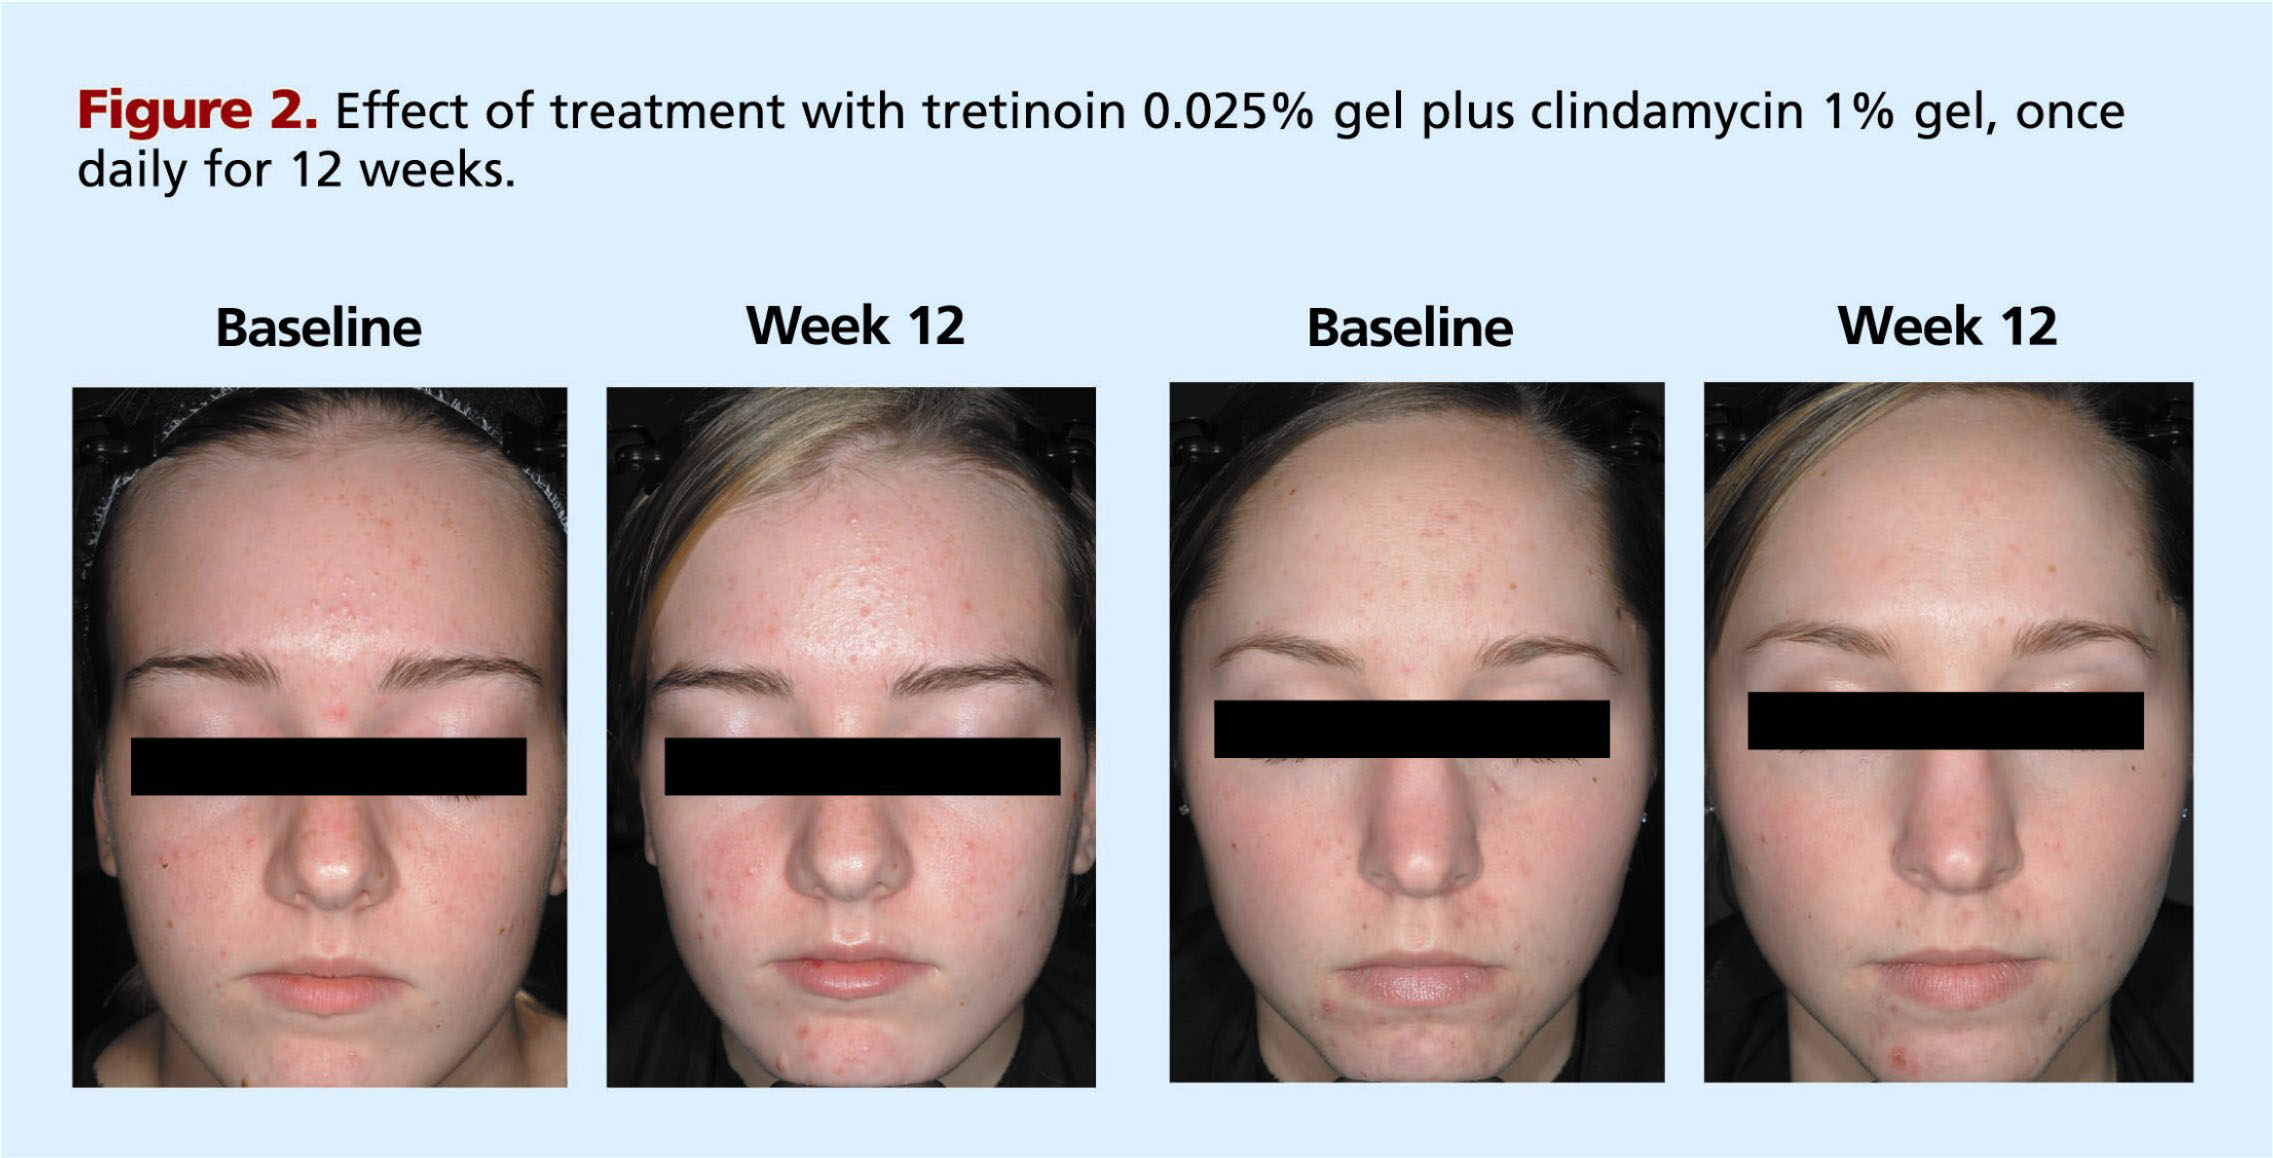 Tazarotene 0 1 Percent Cream Plus Clindamycin 1 Percent Gel Versus Tretinoin 0 025 Percent Gel Plus Clindamycin 1 Percent Gel In The Treatment Of Facial Acne Vulgaris